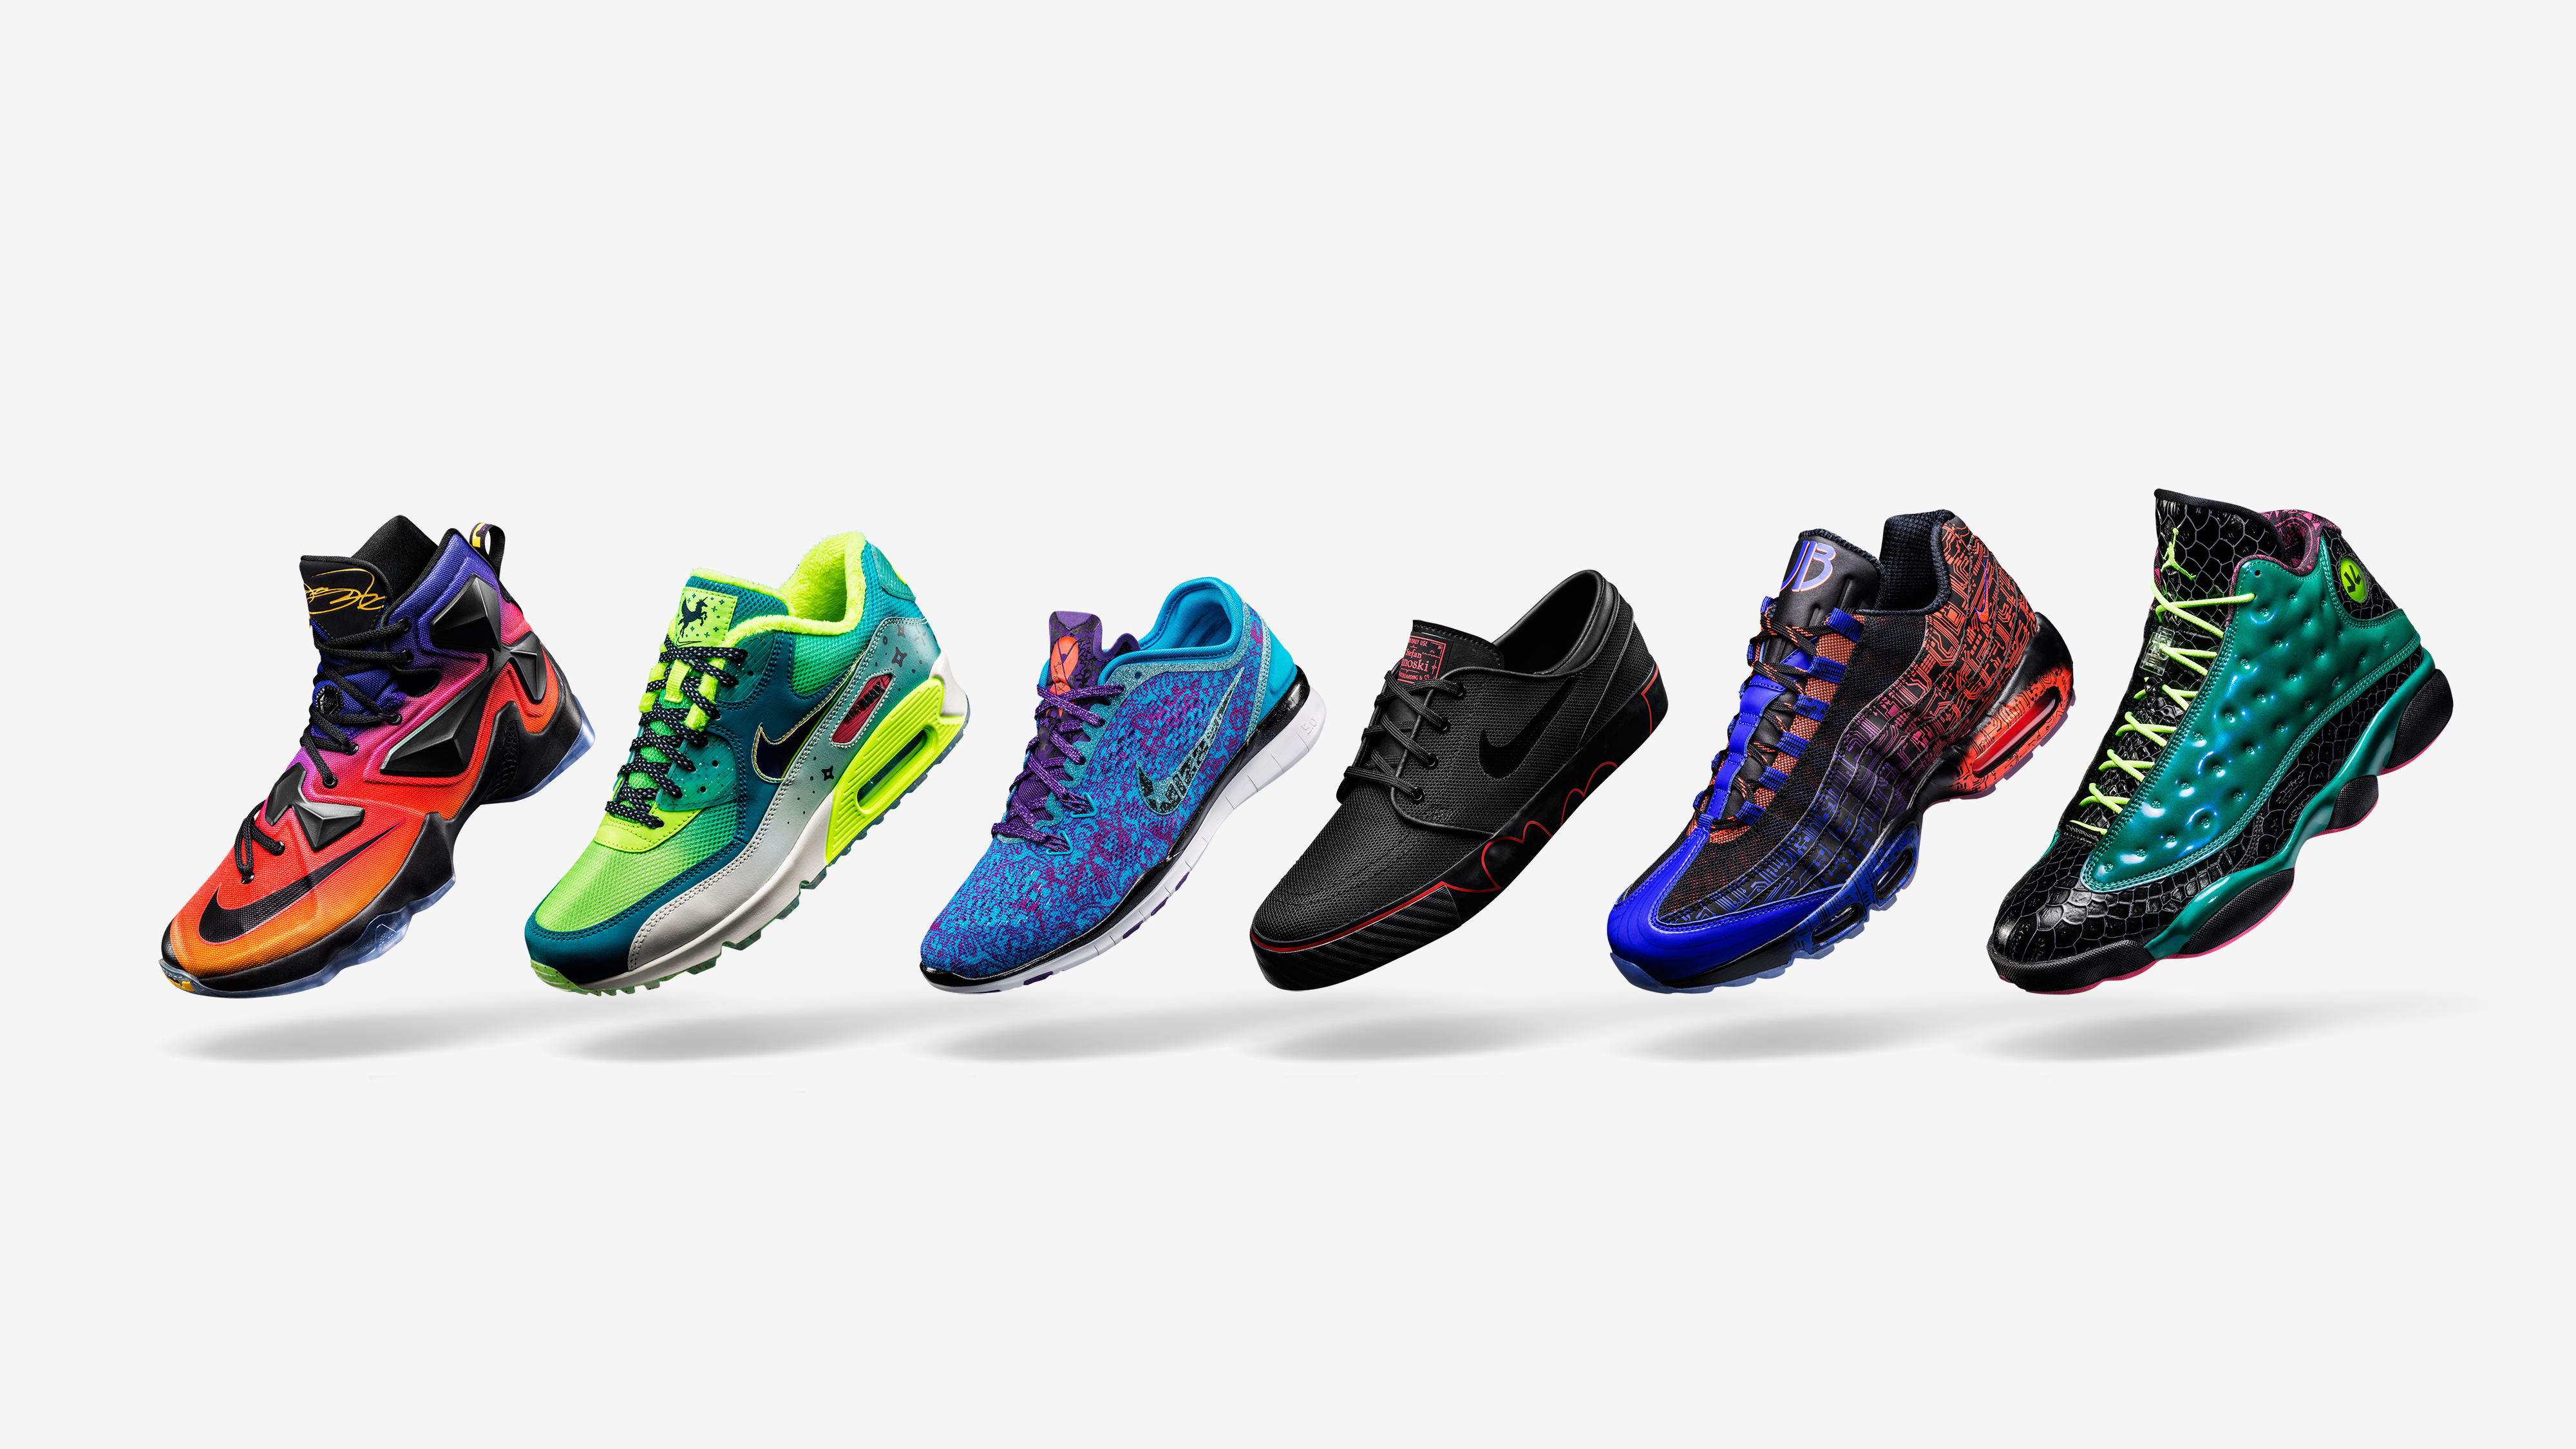 0912f85b75 The 2015 Doernbecher Freestyle Collection will be available beginning  Saturday, November 21, on Nike.com, at select* Nike retail locations across  the ...